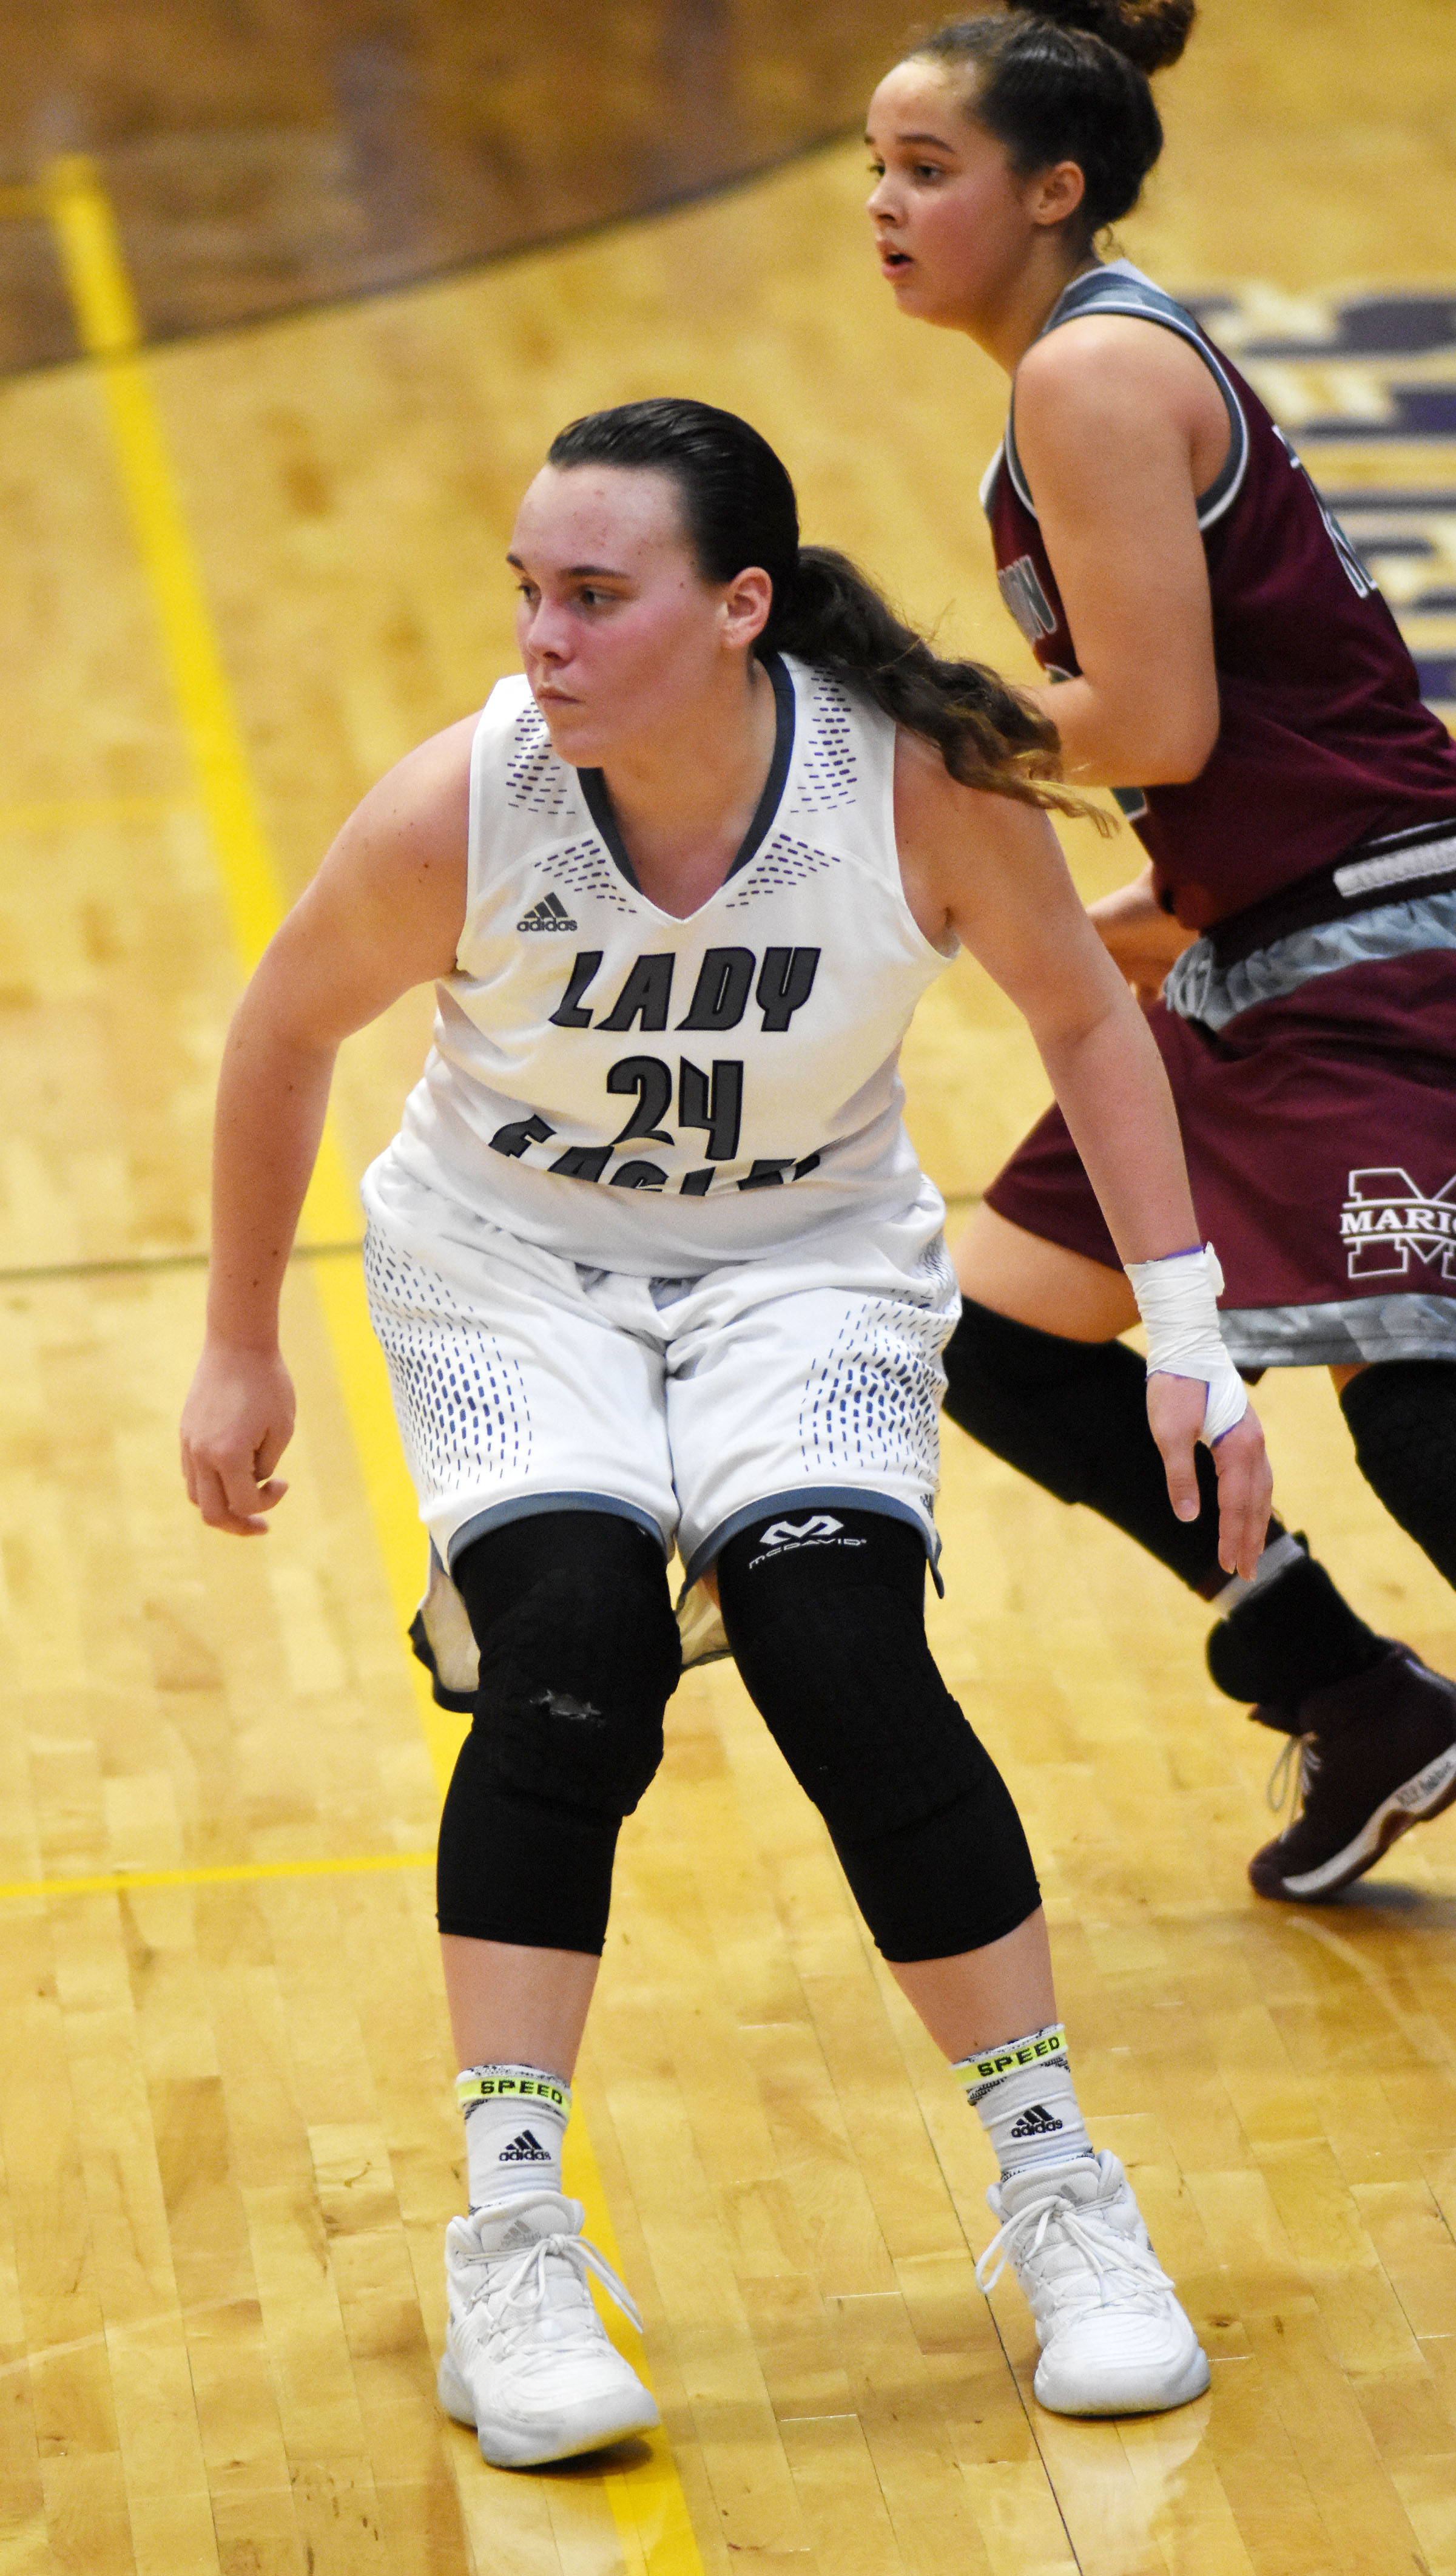 CHS sophomore Katelyn Miller plays defense.